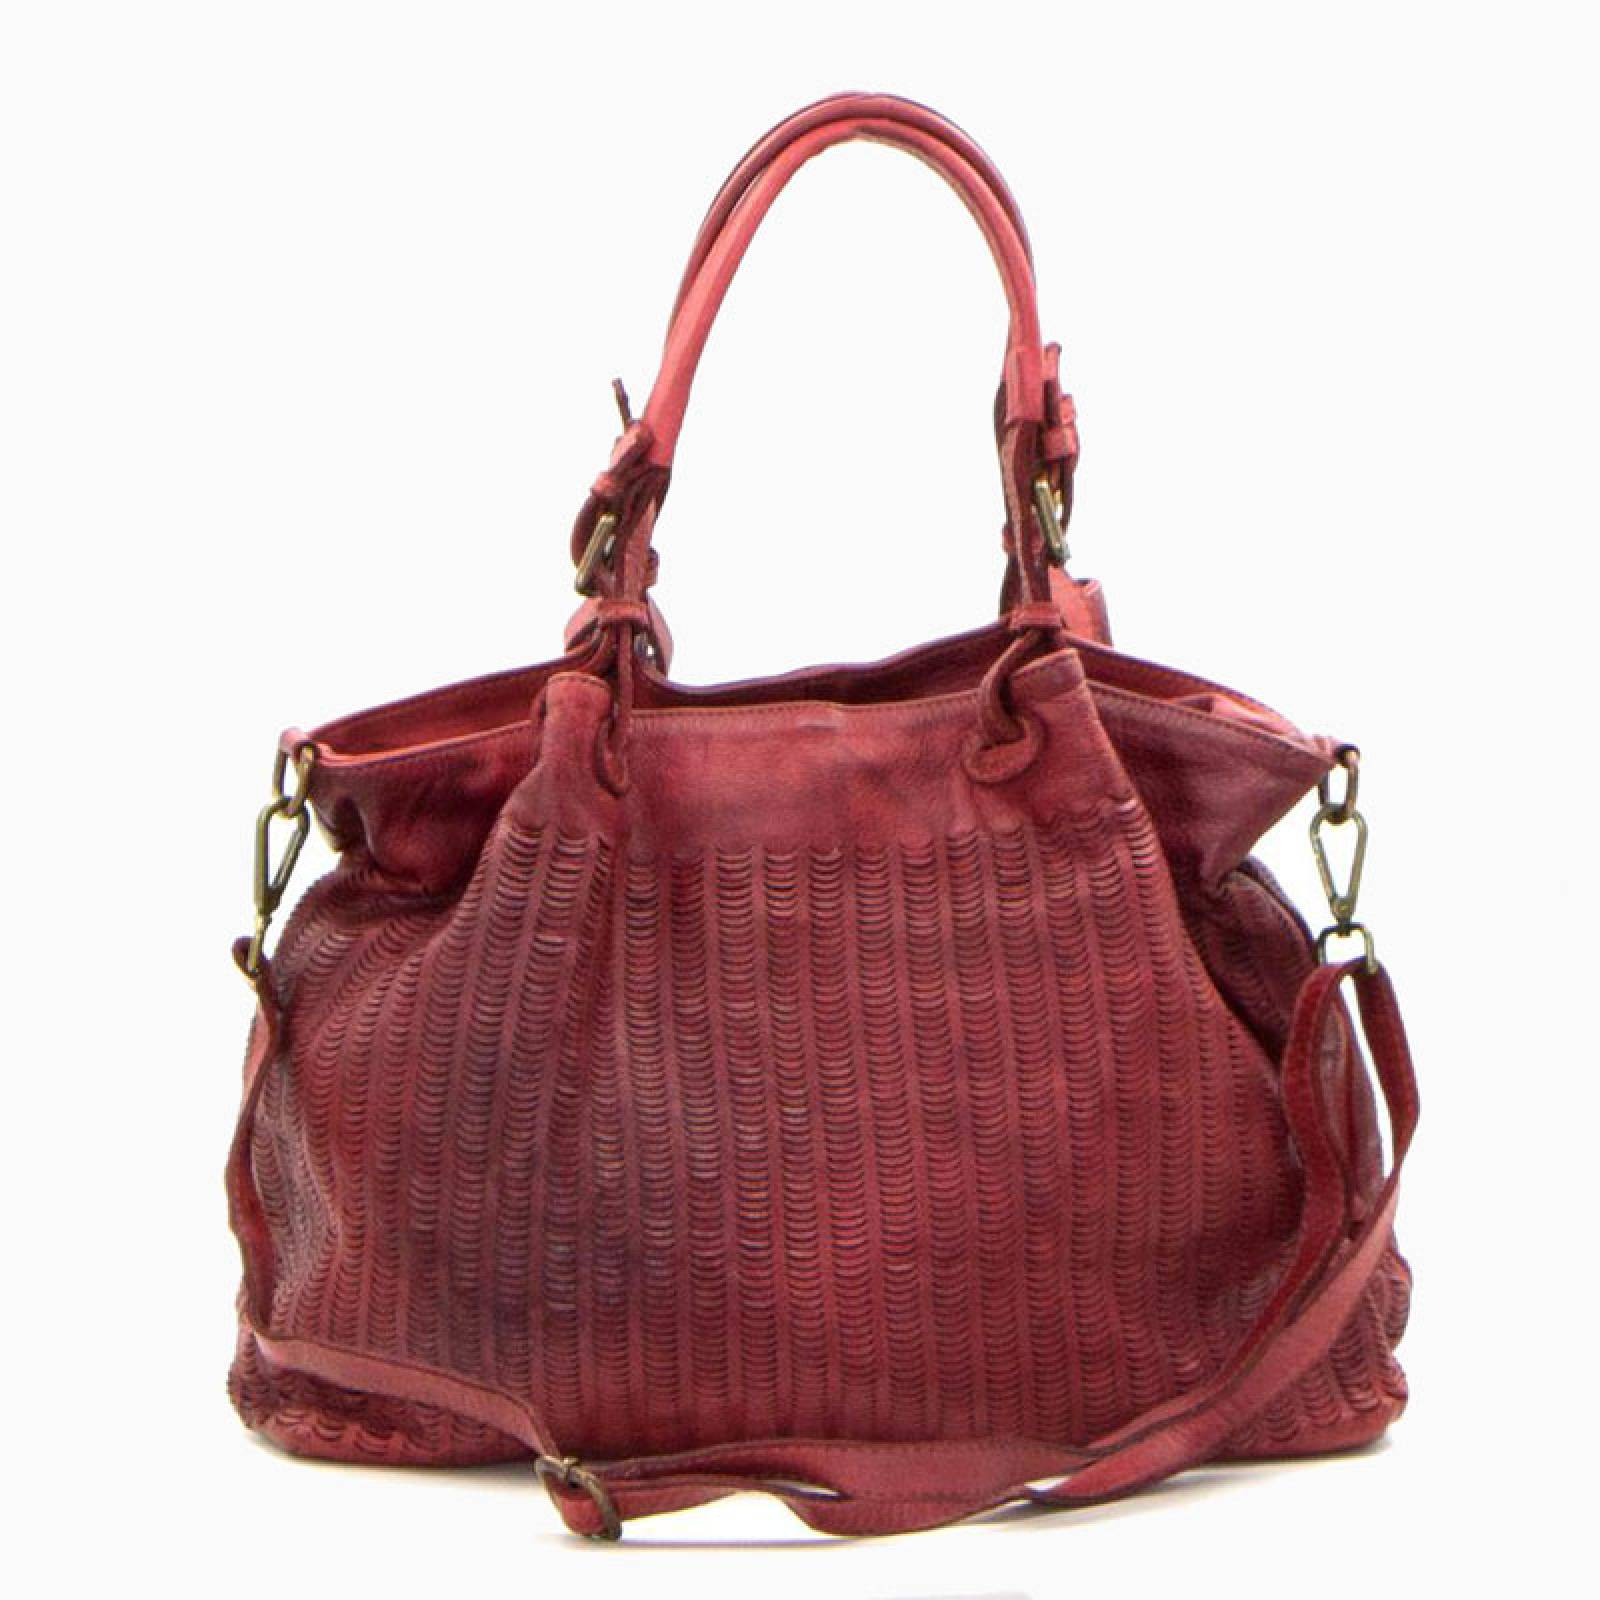 Punched Leather Handbag With Long Strap - Red